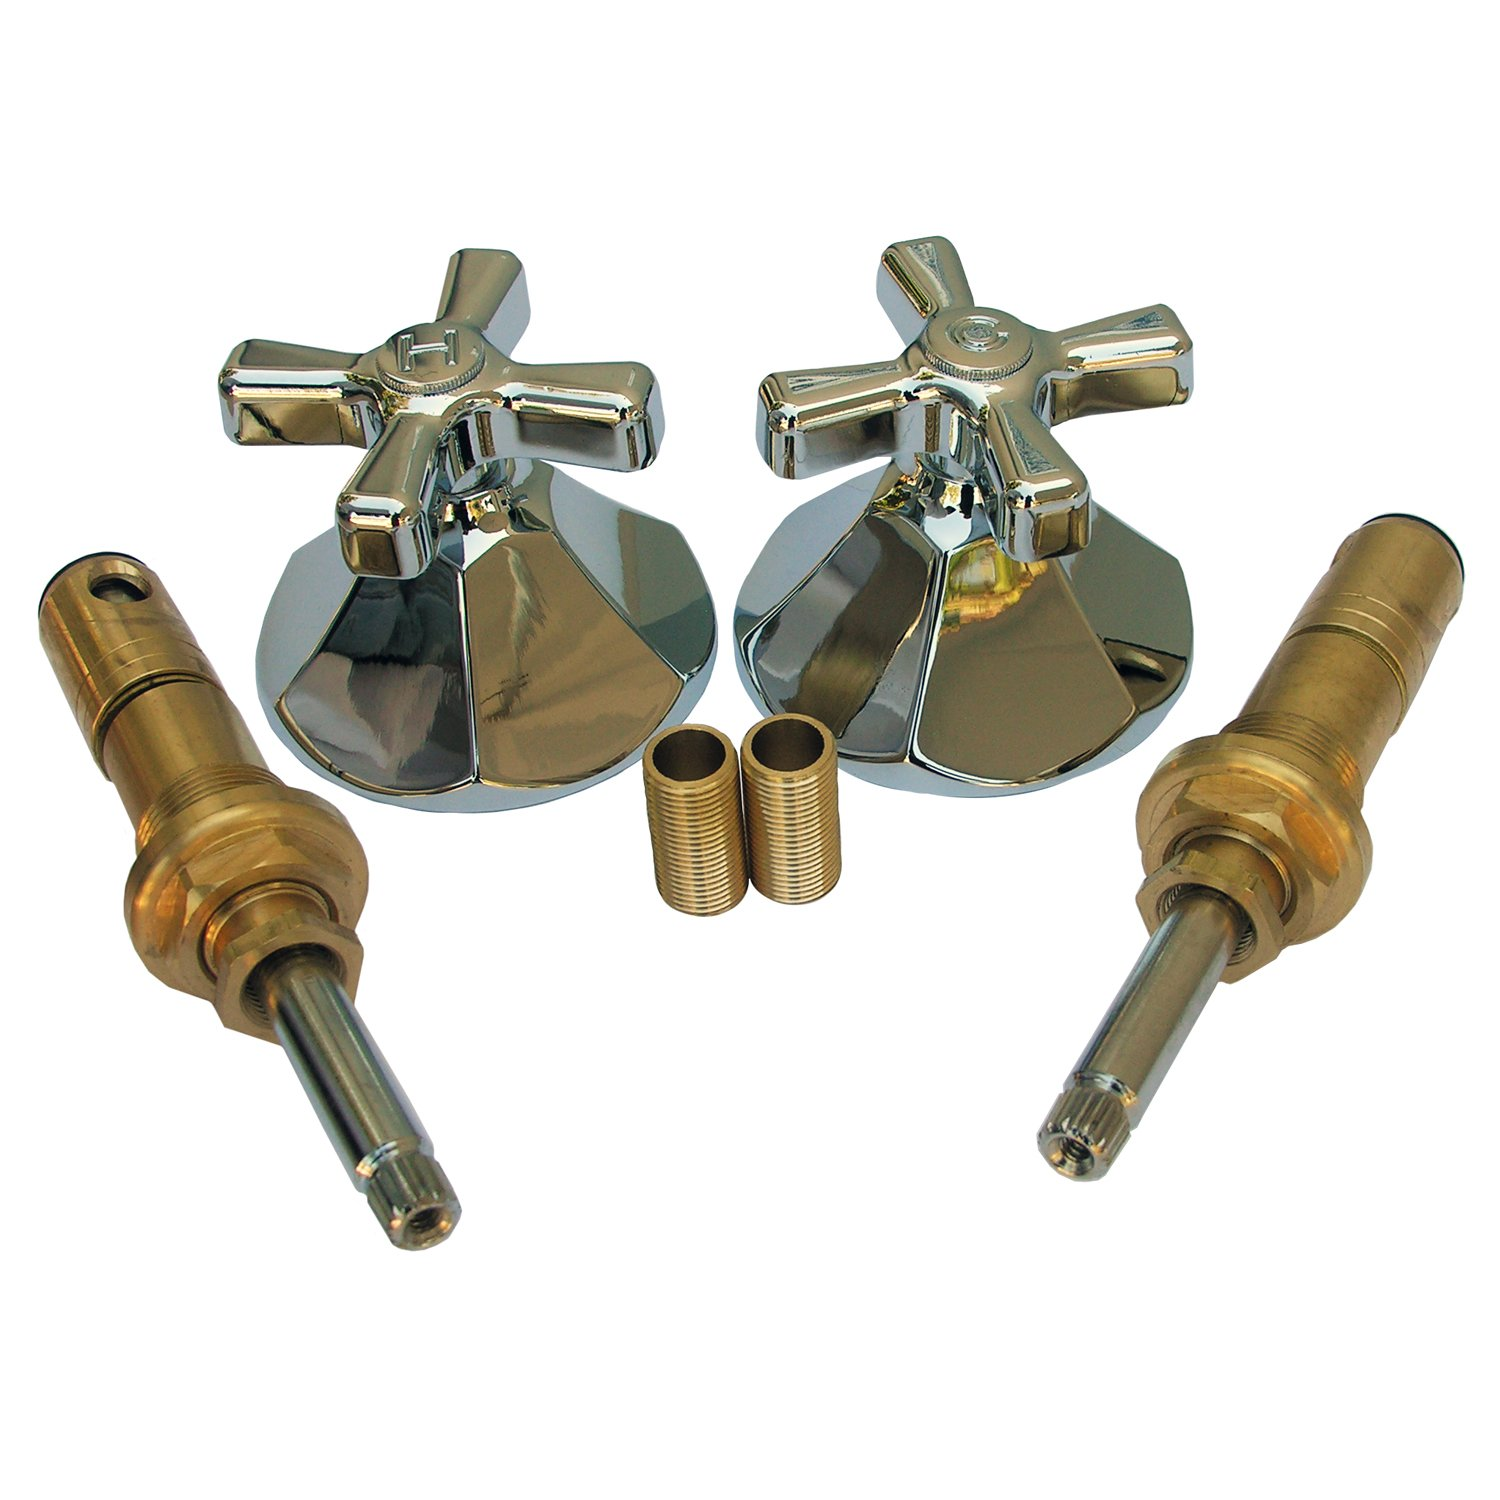 Charmant LASCO 01 9403 American Standard Renu Series Two Valve Tub Or Shower Trim  Kit With Stems Handles, Flanges And Nipples, Chrome   Faucet Trim Kits    Amazon.com